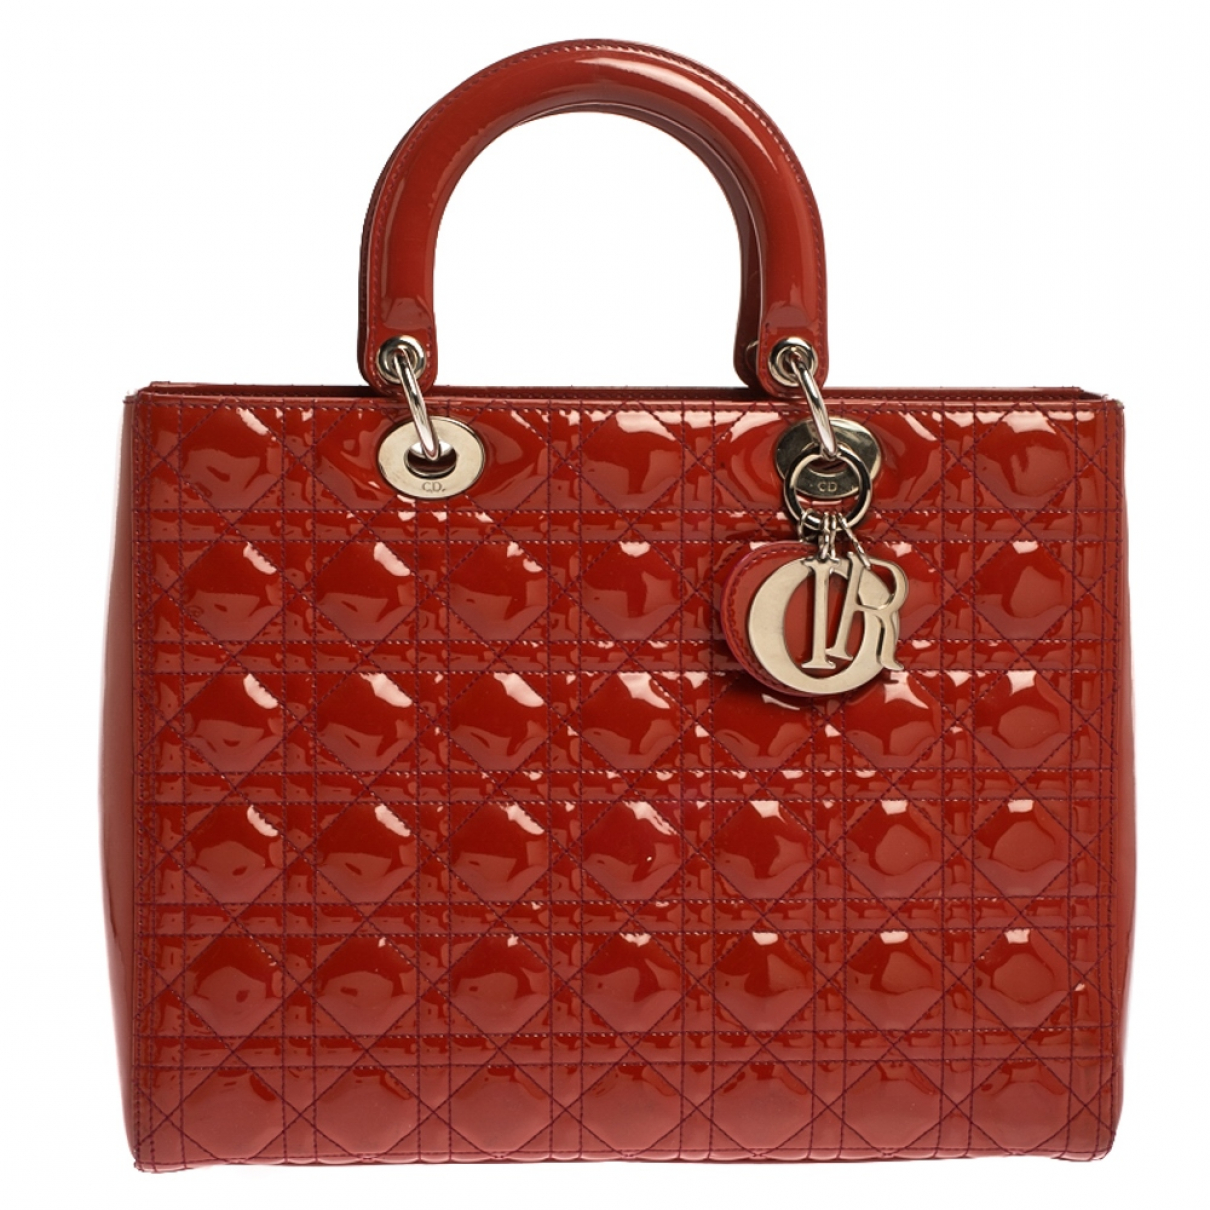 Dior Lady Dior Patent leather handbag for Women N